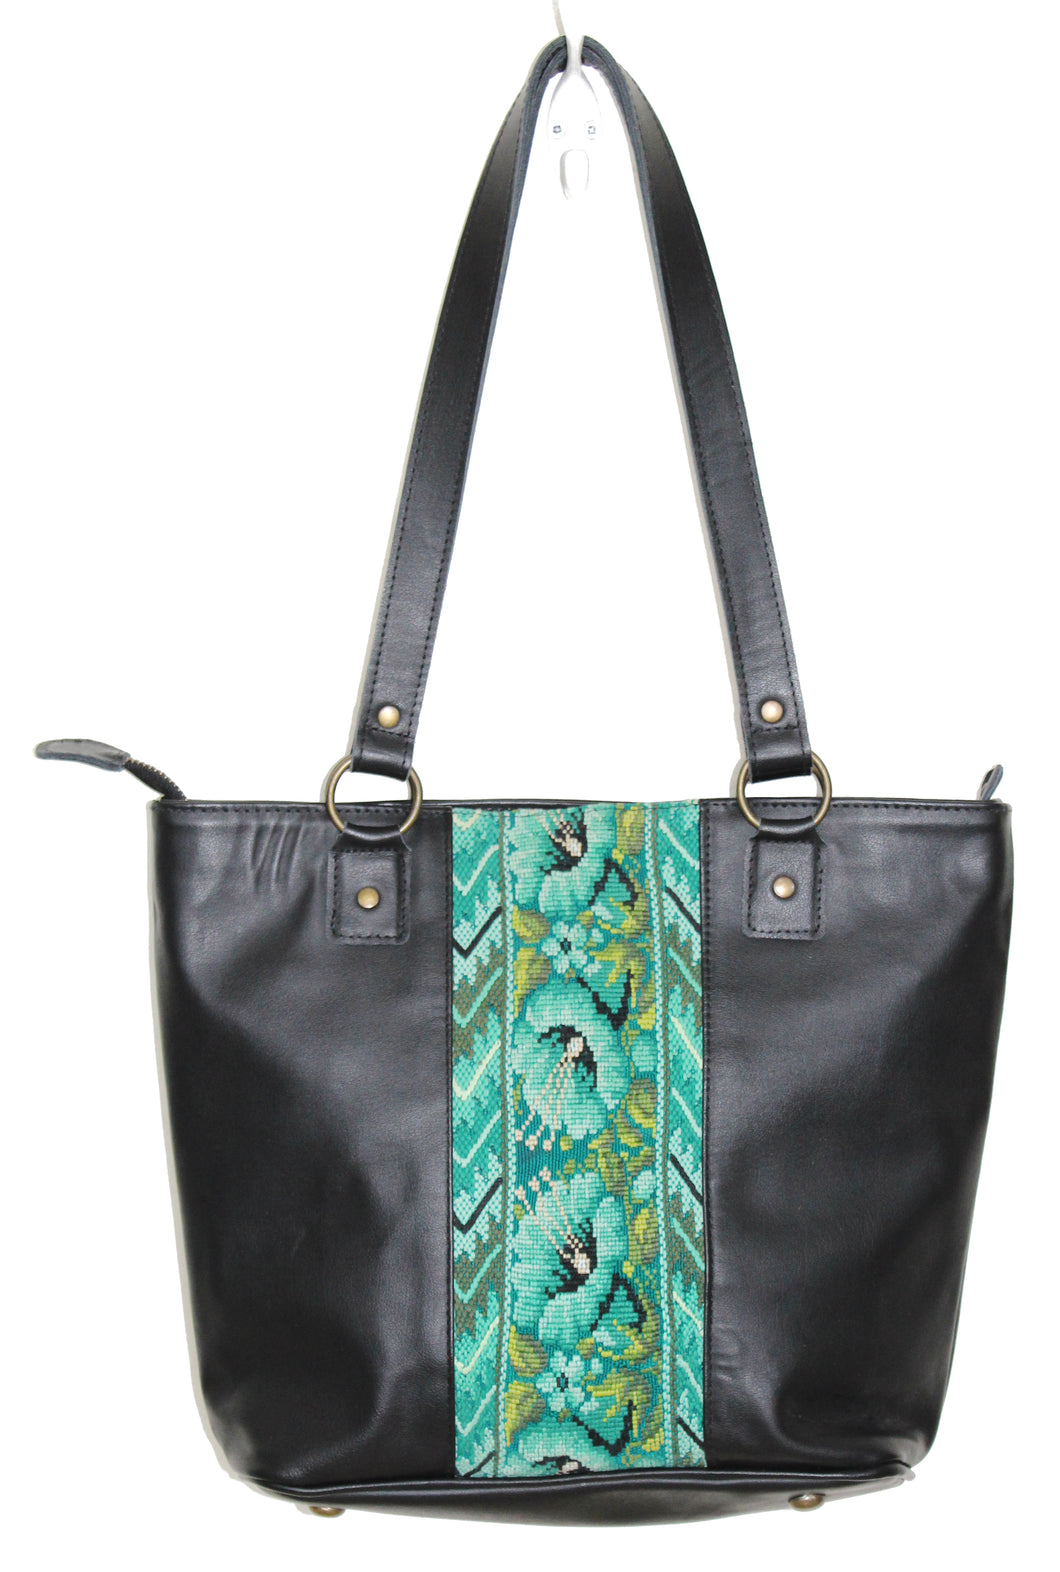 ALIZA Conceal and Carry Bag - Huipil 0003